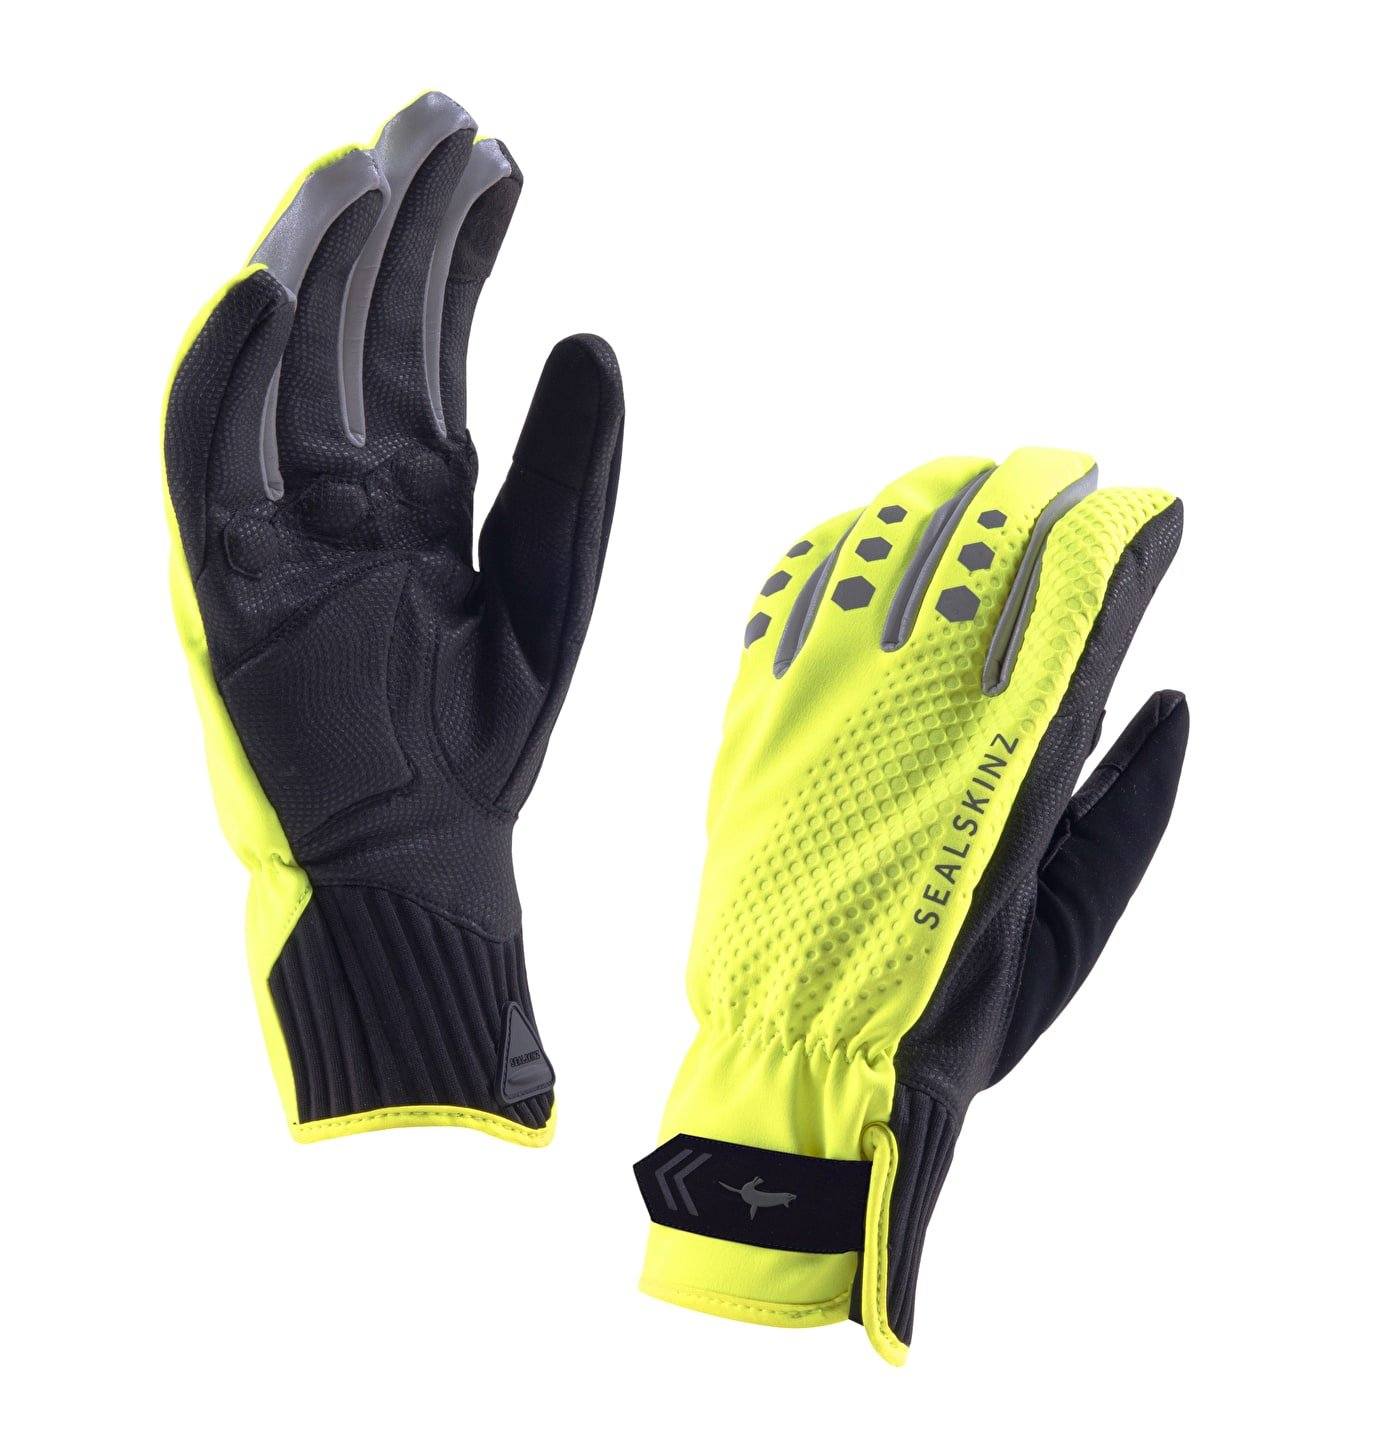 SealSkinz Mens All Weather Cycle Xp Waterproof Gloves